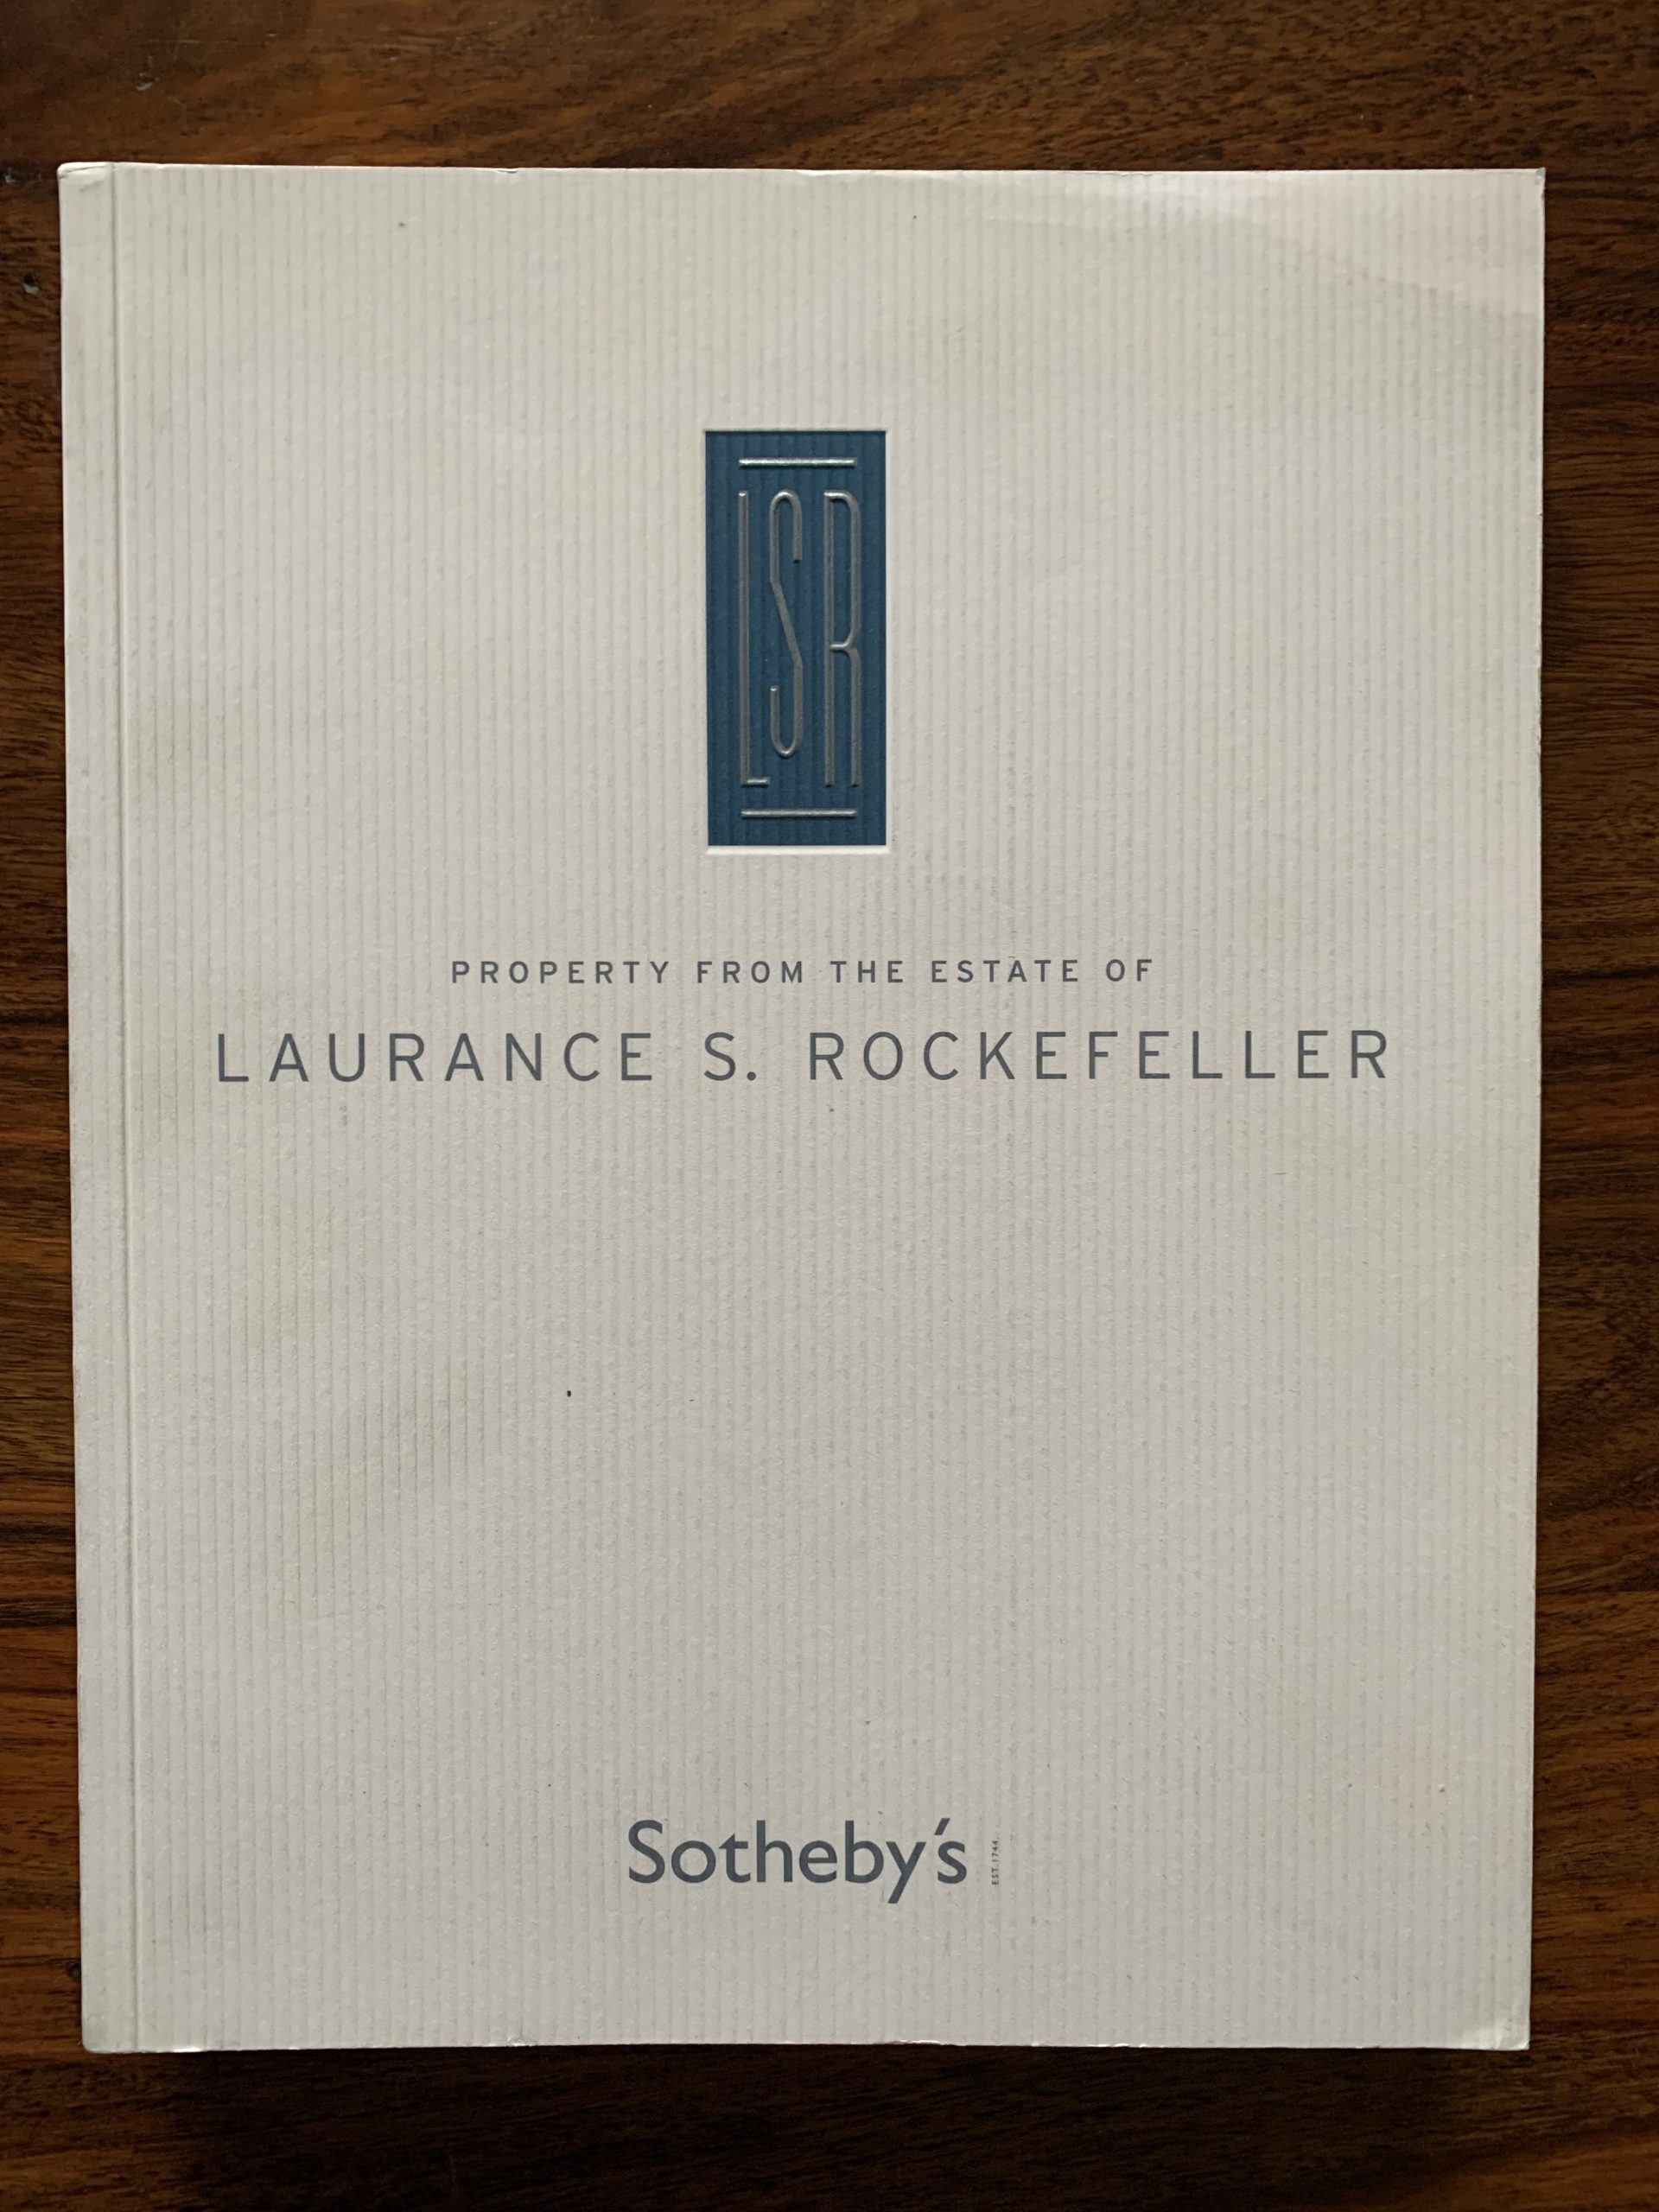 Sotheby's. Property From the Estate of Laurance S. Rockefeller.